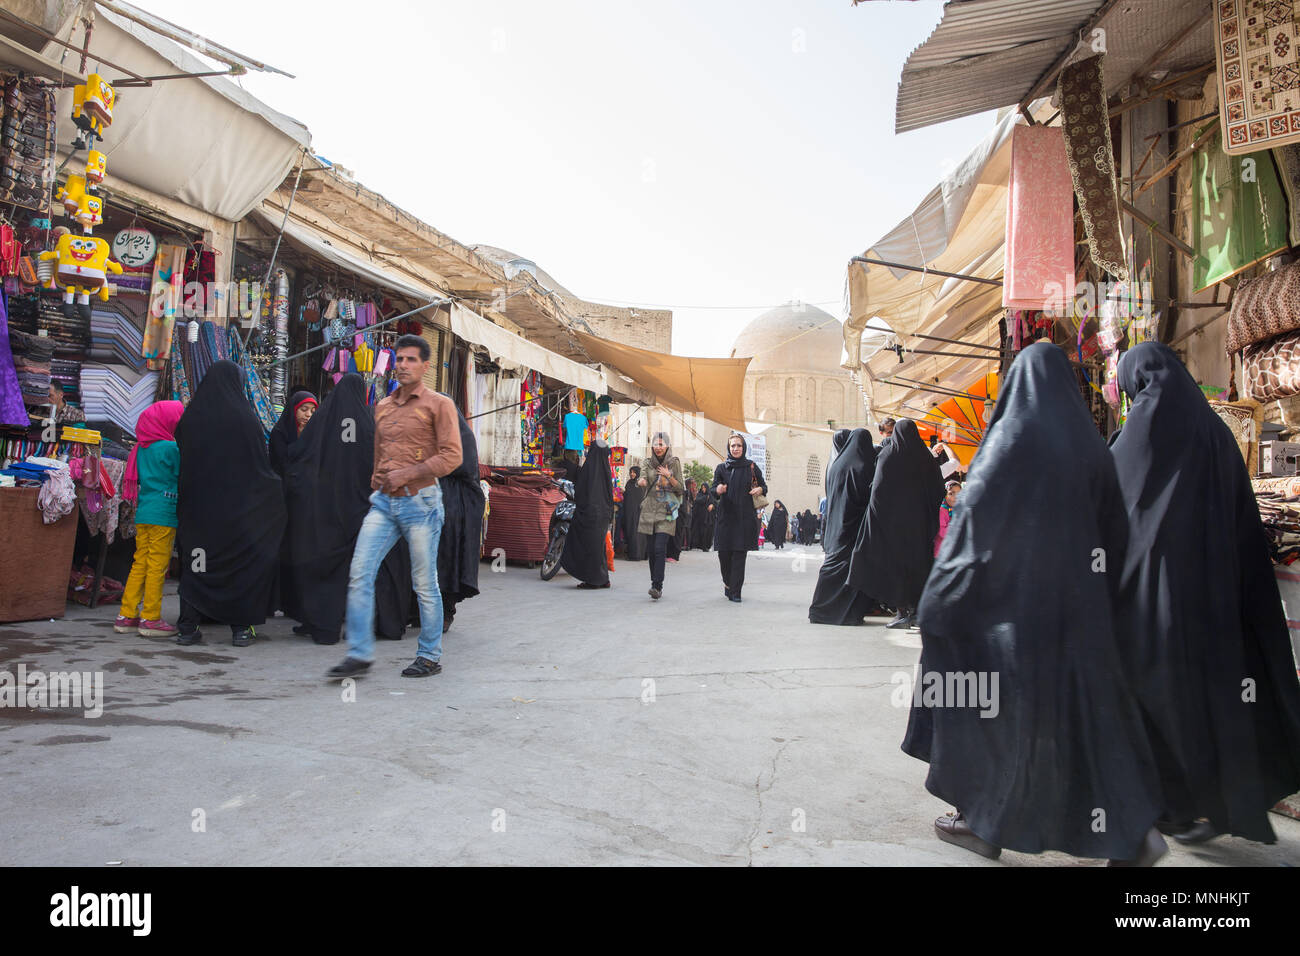 The largest bazaar in the Middle East 16